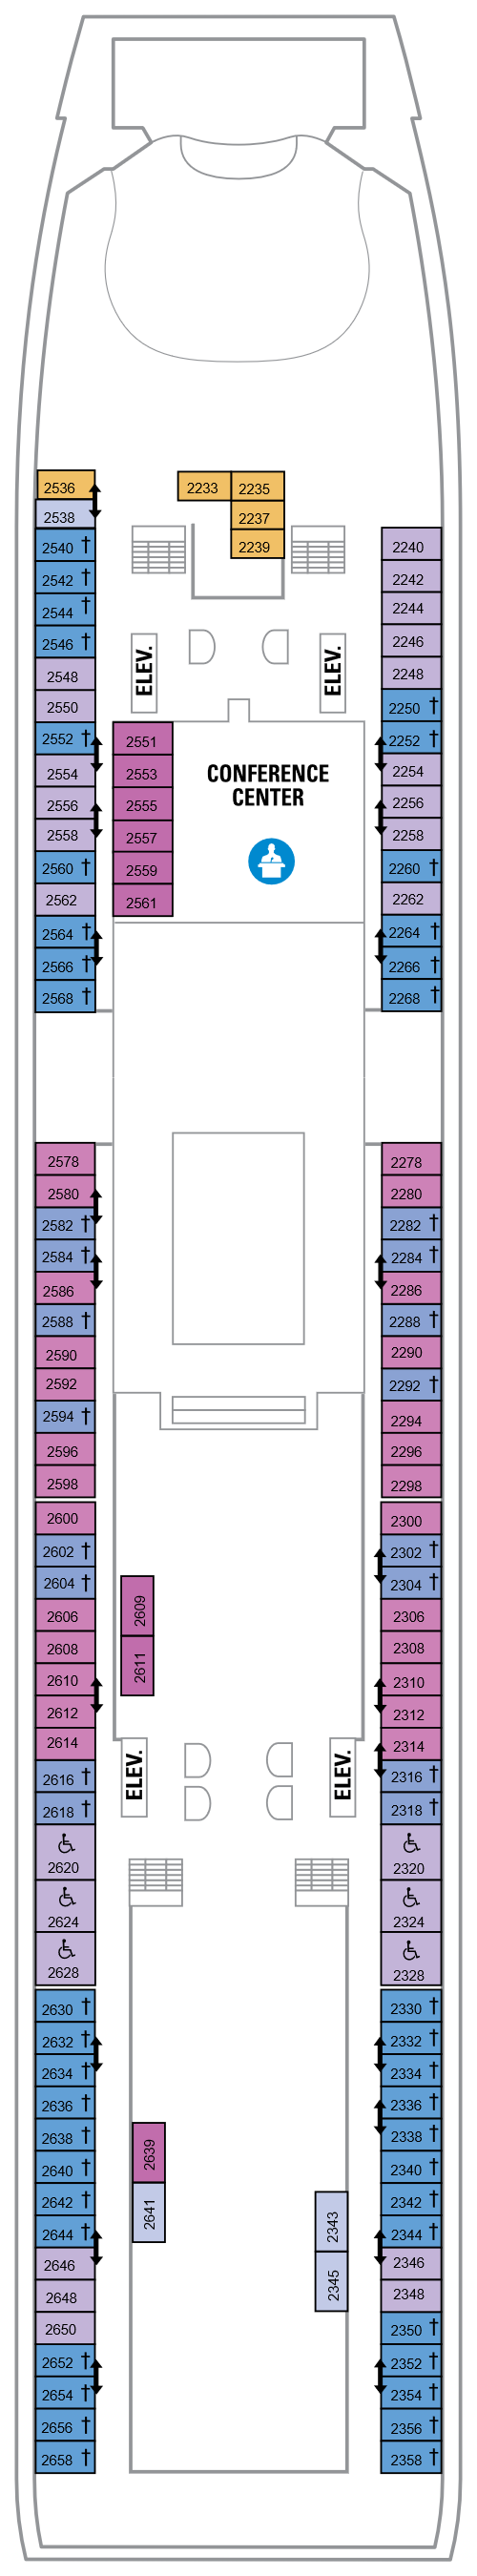 Adventure Of The Seas Deck 2 layout